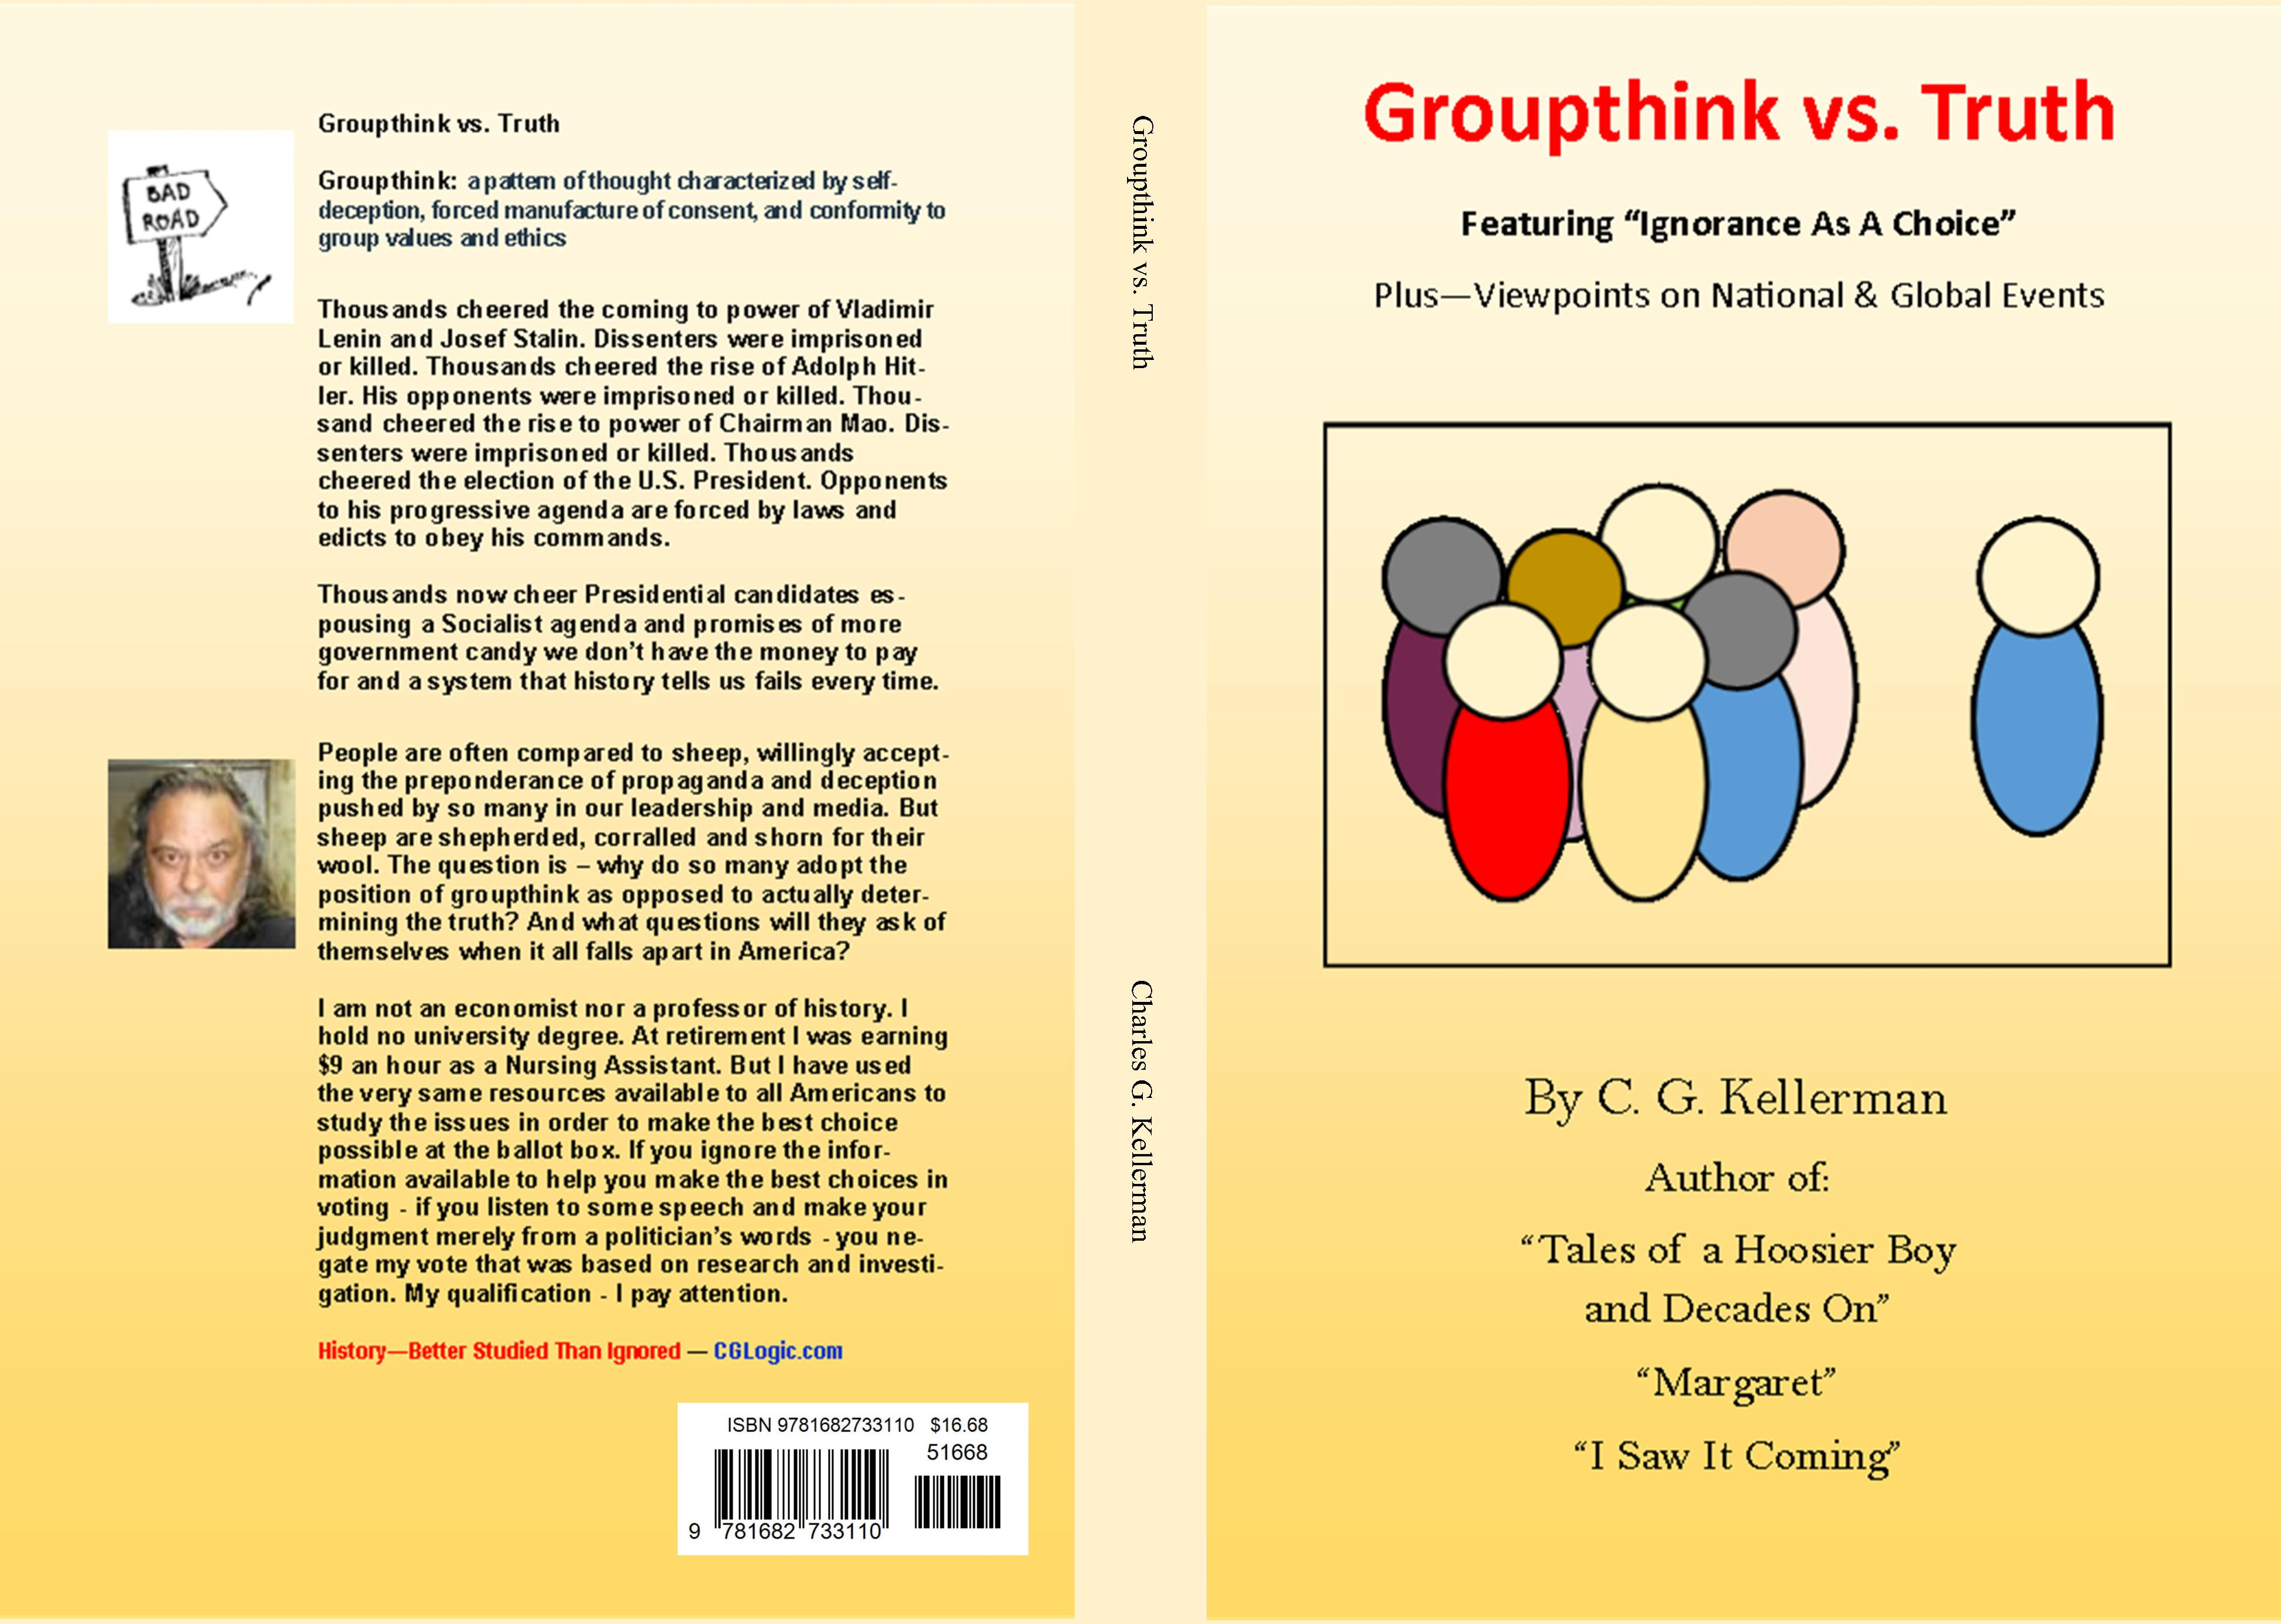 Groupthink vs. Truth cover image